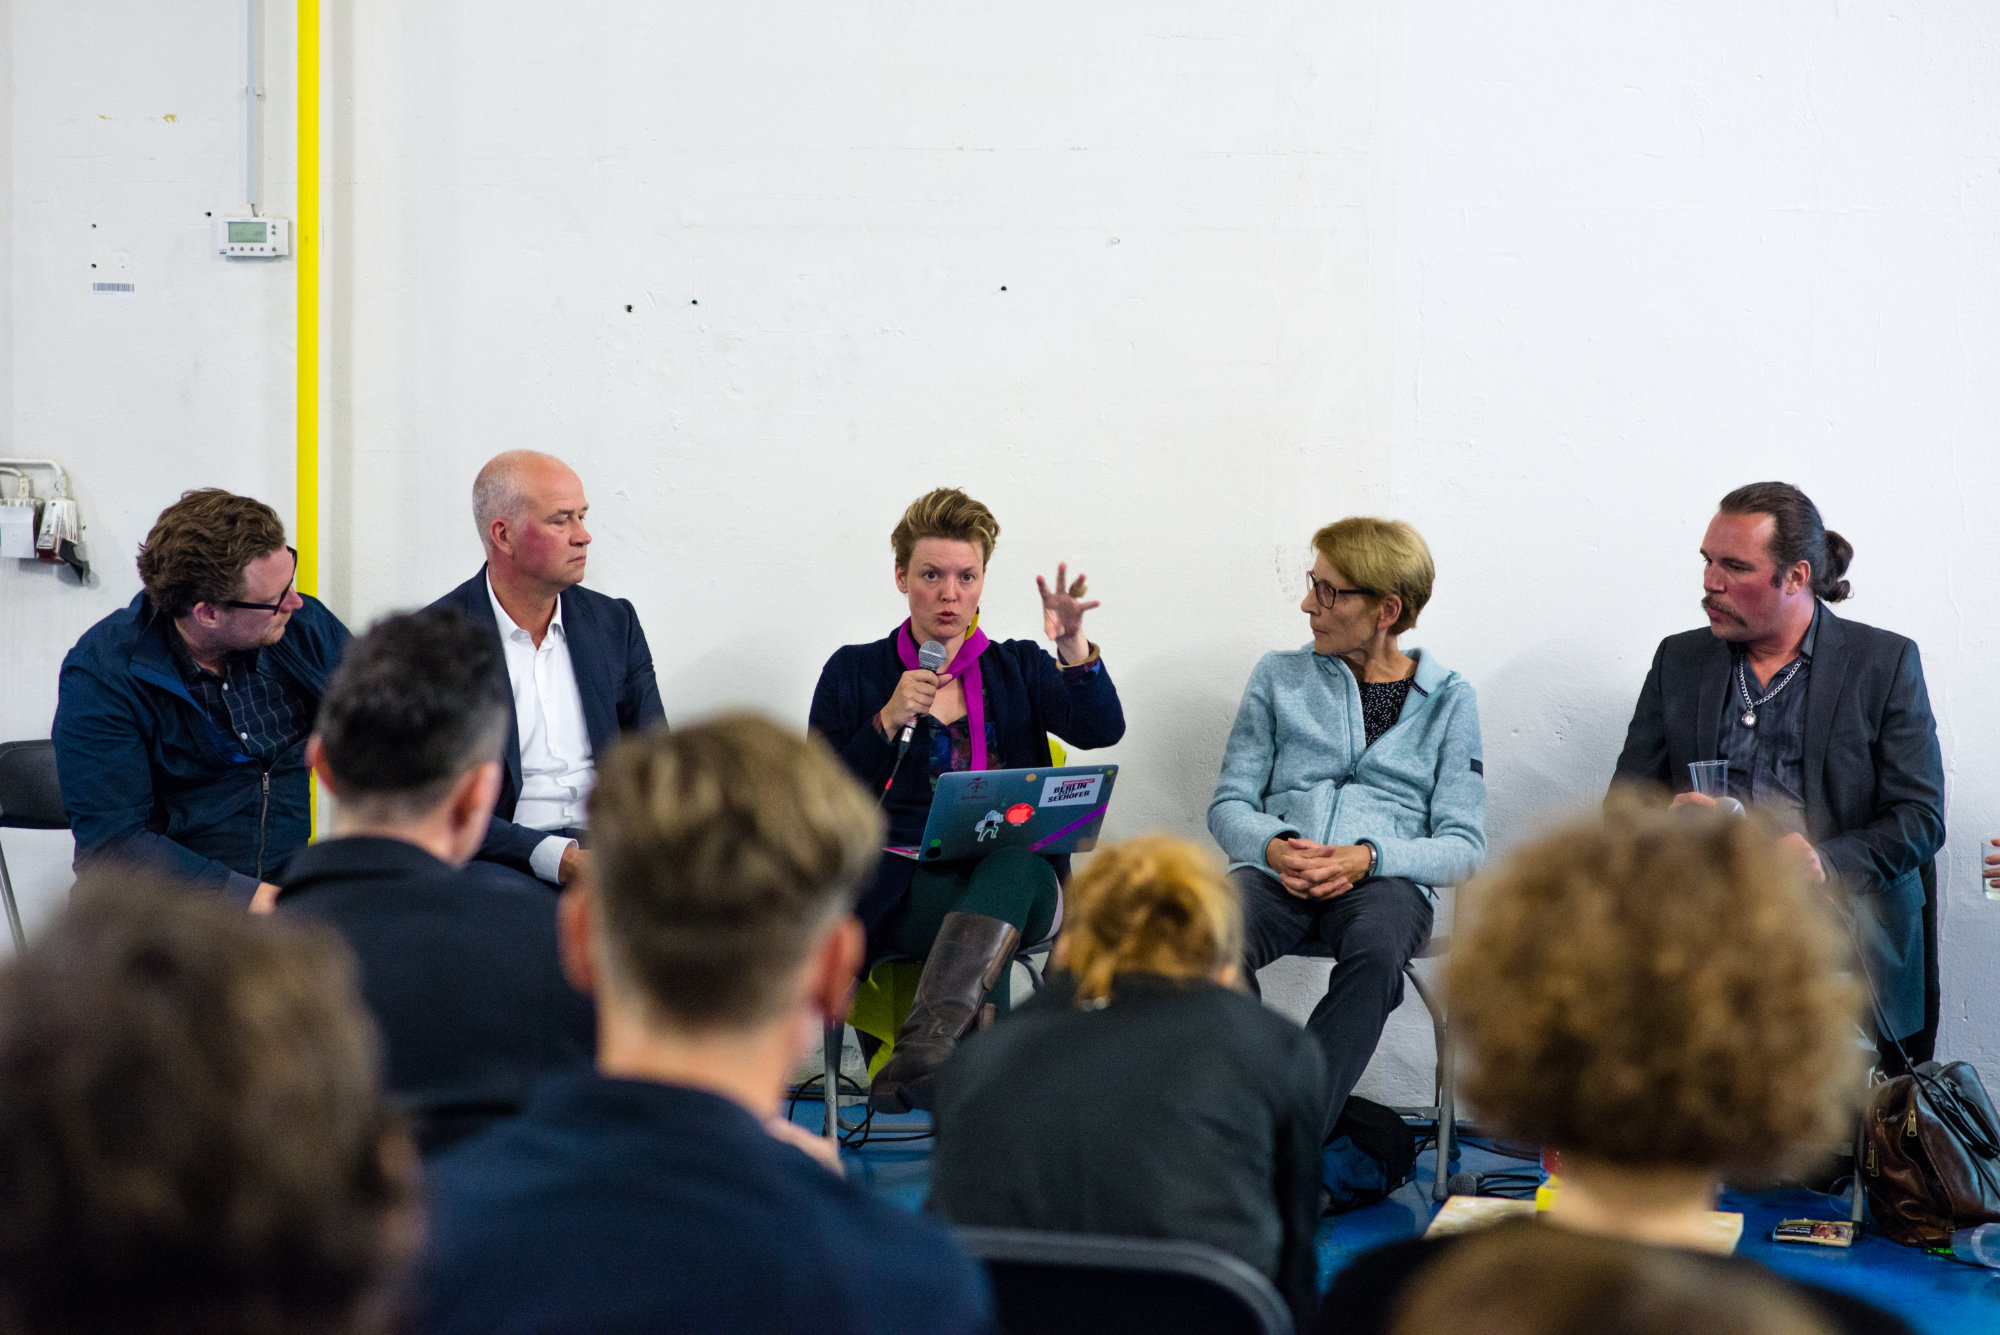 "<p><b>How to Breathe In a Bubble?<br /> </b><strong>An experimental discussion panel</strong> with Marco Schmitt (performance artist and systems coach), Katalin Gennburg (speaker for urban development, tourism and smart city of the Left Fraction in the Berlin House of Representatives), Andreas Krüger (director of Belius GmbH, former director of Modulor, Runder Tisch Liegenschaftspolitik), Sven Lemiss (director BIM), Sandra Meireis (architecture theorist, TU Berlin), Zoe Claire Miller (artist, co-founder Berlin Art Prize), Martin Schwegmann (urban researcher, studio commissioner for Berlin), Alexandra von Stosch (Artprojekt Unternehmensgruppe), Cornelia Wagner (OraNostra)</p> <p><i>""Everything is gentrification now"" but Richard Florida isn't sorry.</i> As the city gets more expensive, more tightly packed, some win, others lose. On this evening, Marco Schmitt and participants from art, politics, and real estate attempted to untangle the socio-economic complex of gentrification using Schmitt's method of COA CHING. What (moral) scope of action is possible, for those affected and those responsible, when urban space is subject to intense pressure and scarcity?</p>"